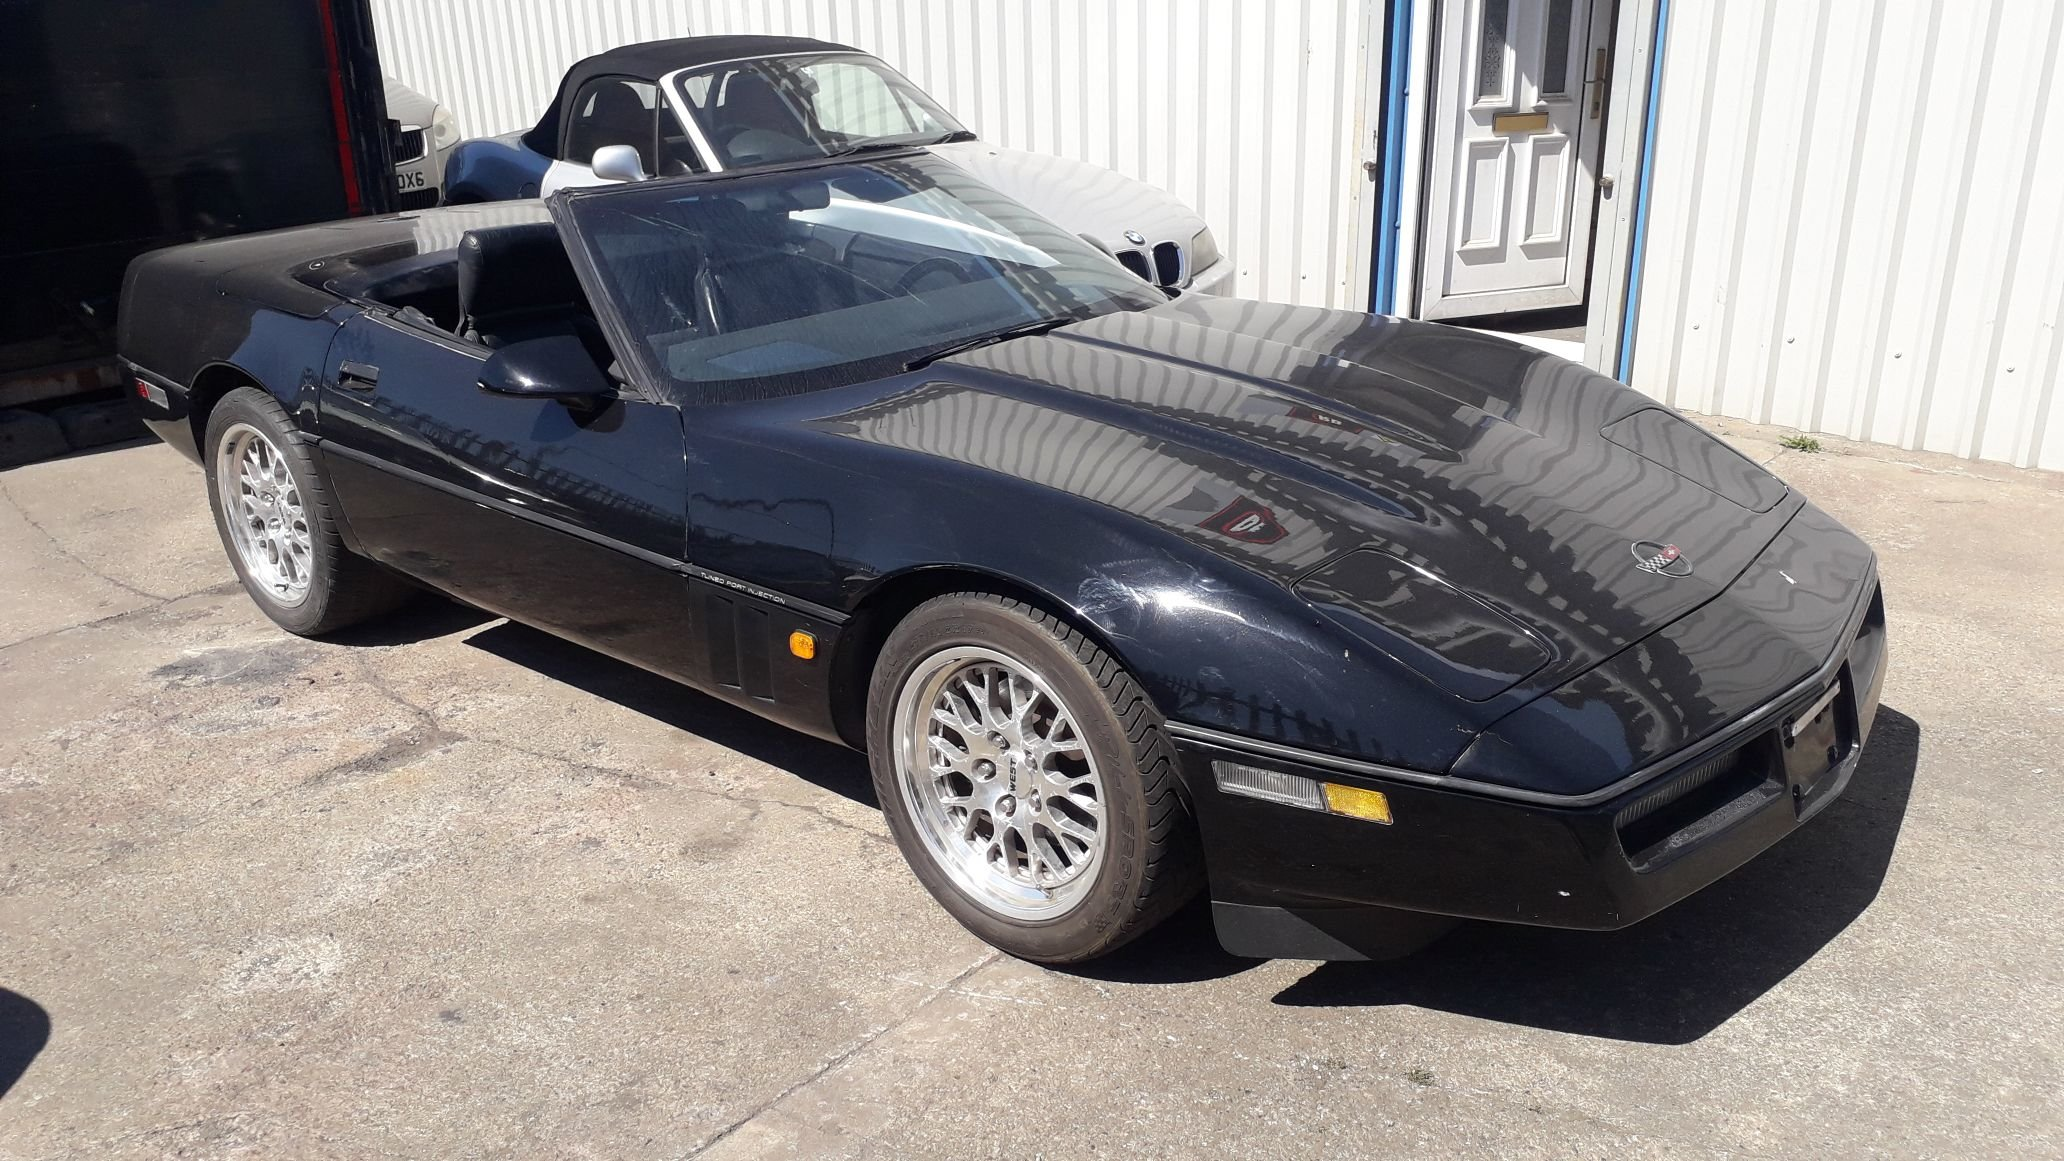 1989 C4 CORVETTE - IMPORTED FROM JAPAN - RUST FREE - CHEAP  For Sale (picture 1 of 6)